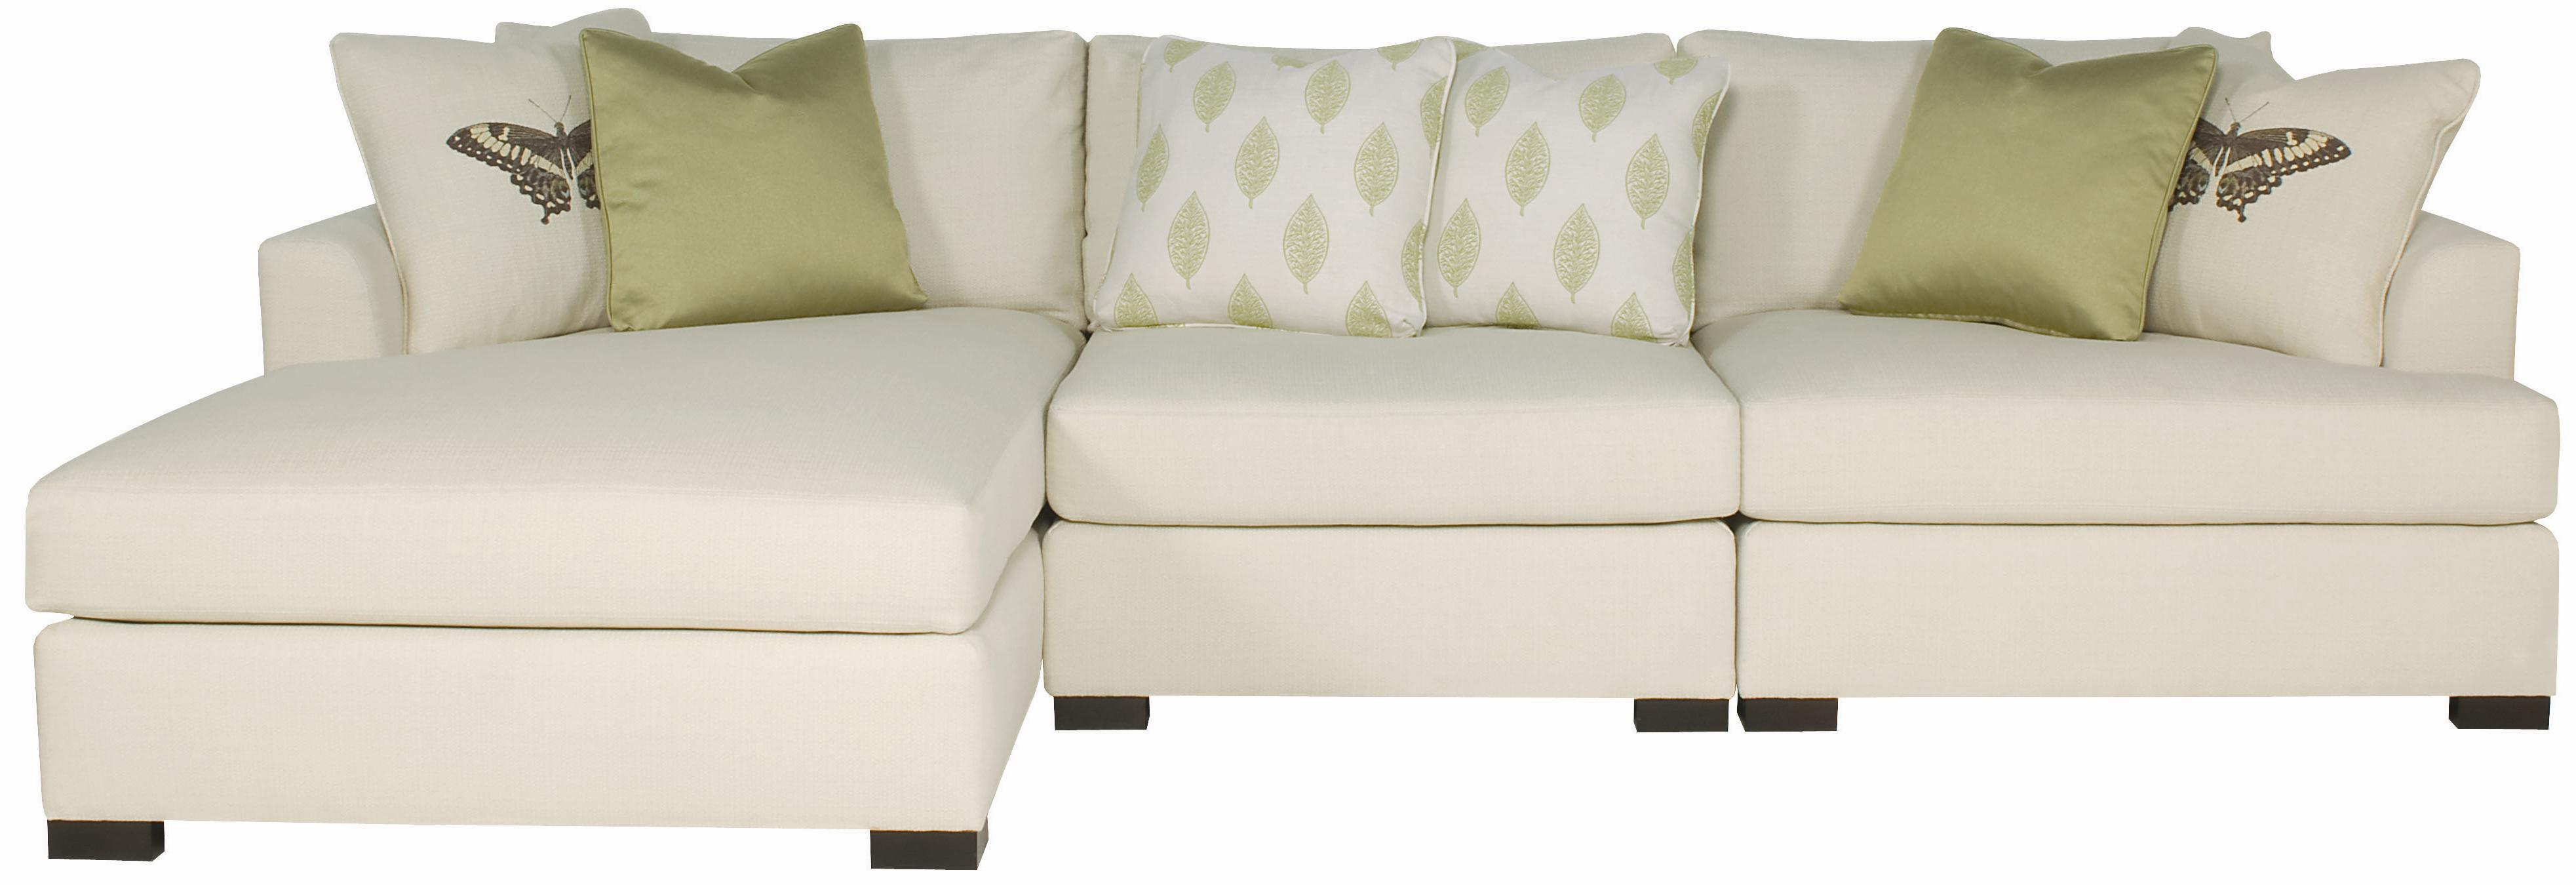 Bernhardt adriana sectional sofa with chaise lounger for Bernhardt chaise